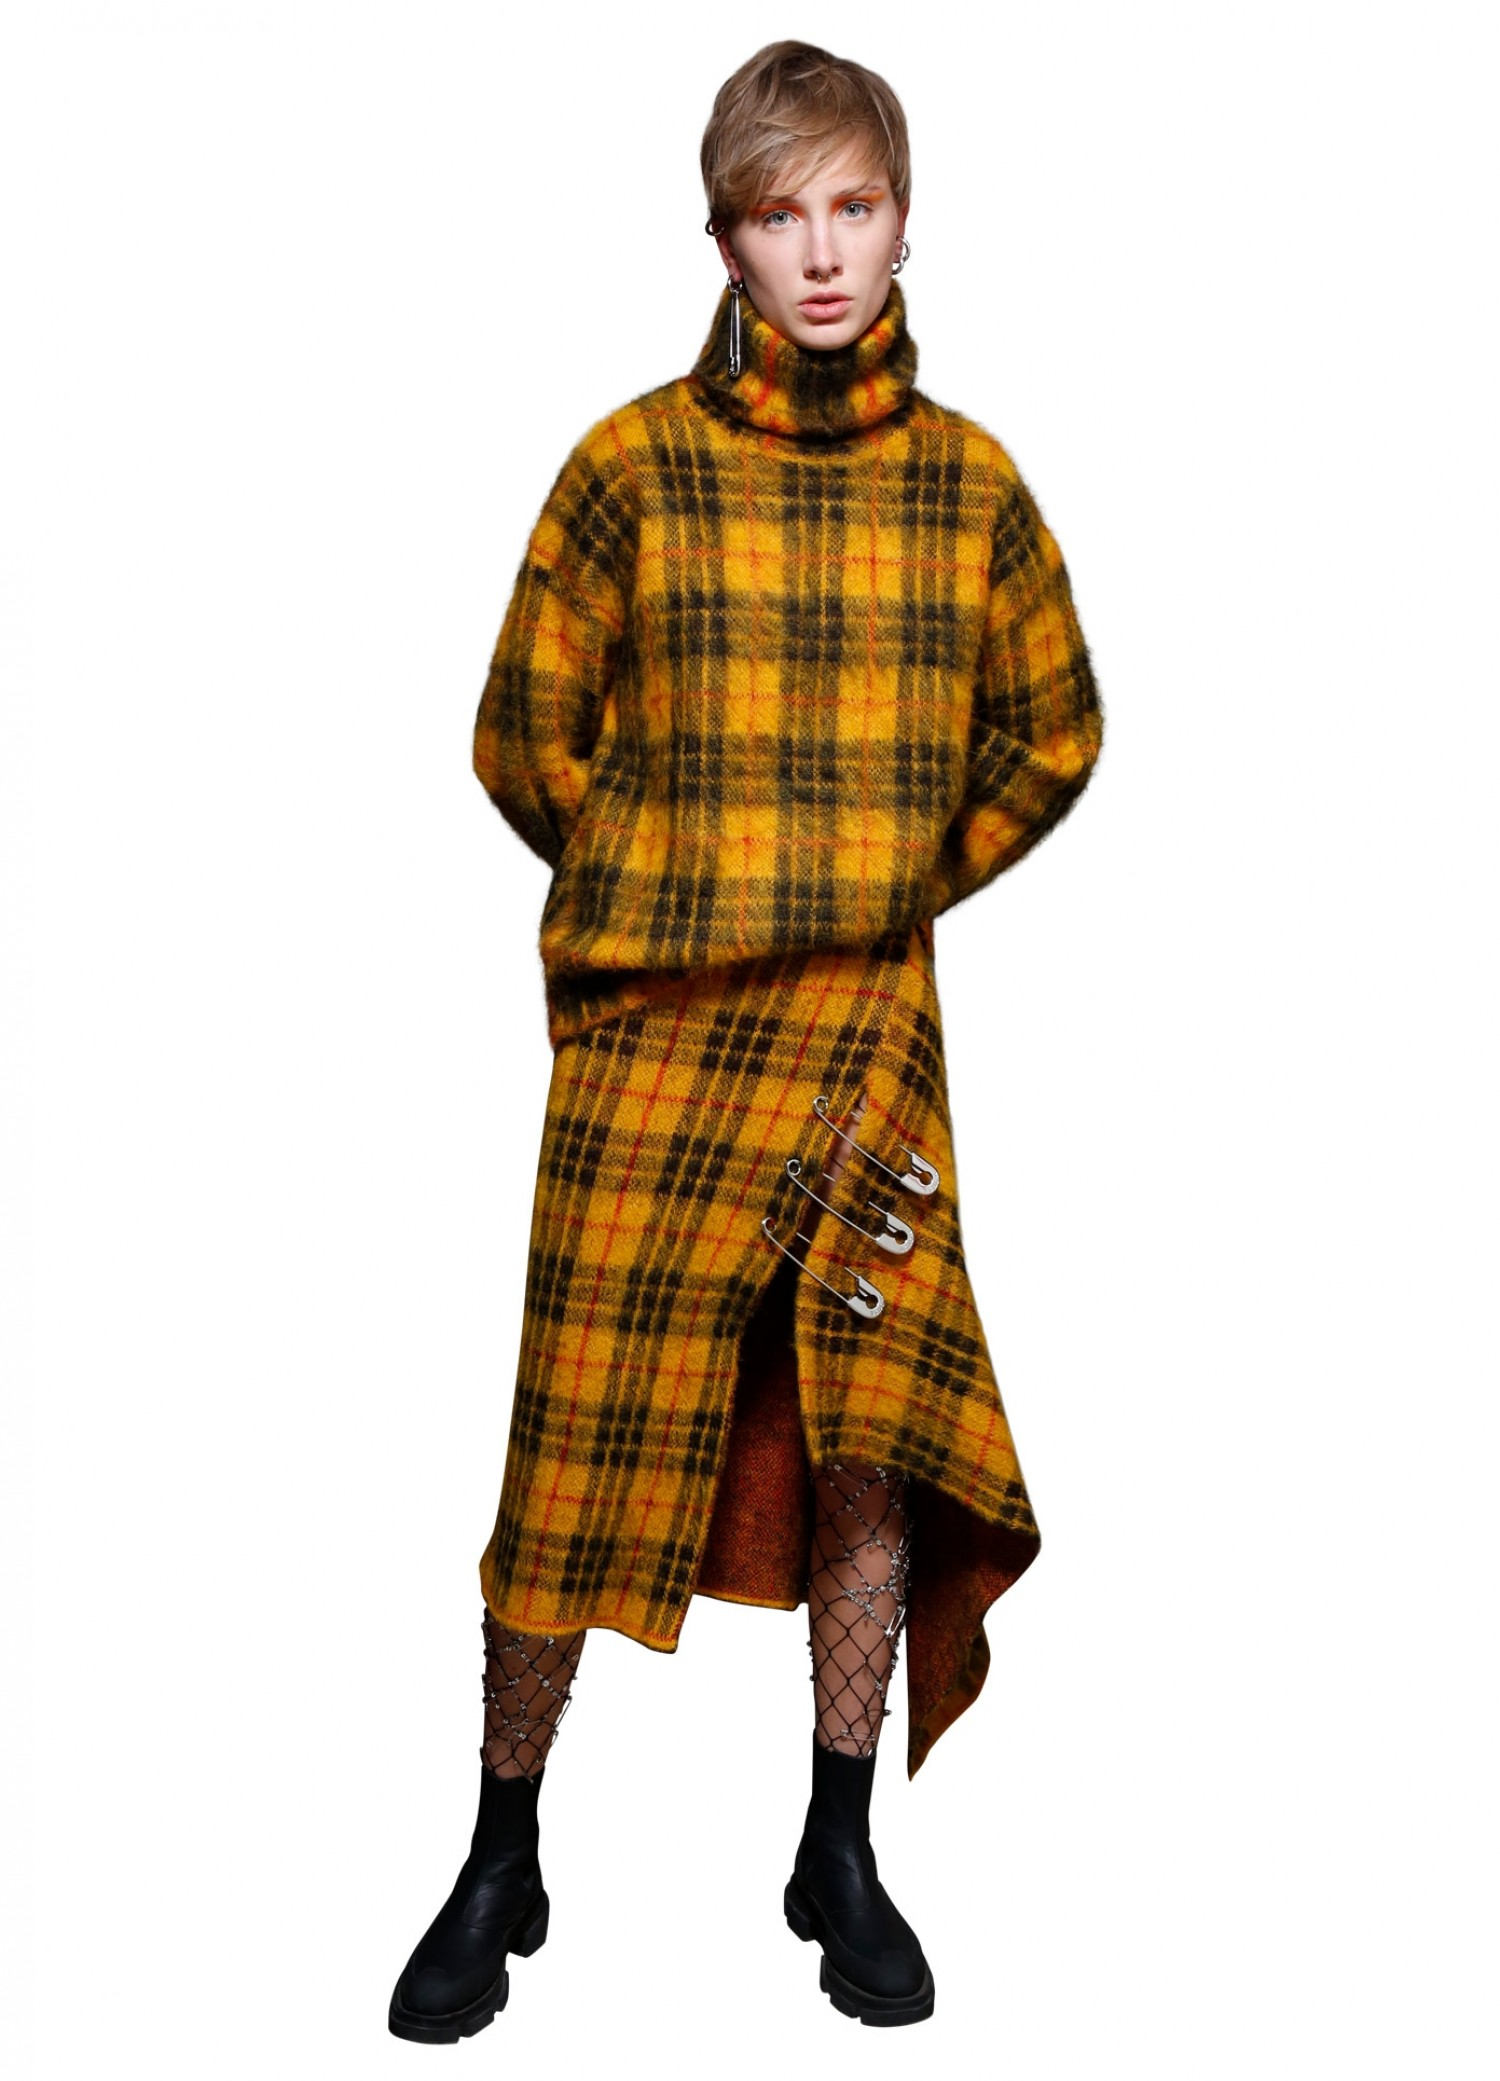 MONSE Tartan Mohair Skirt in Mustard Multi on Model Front View